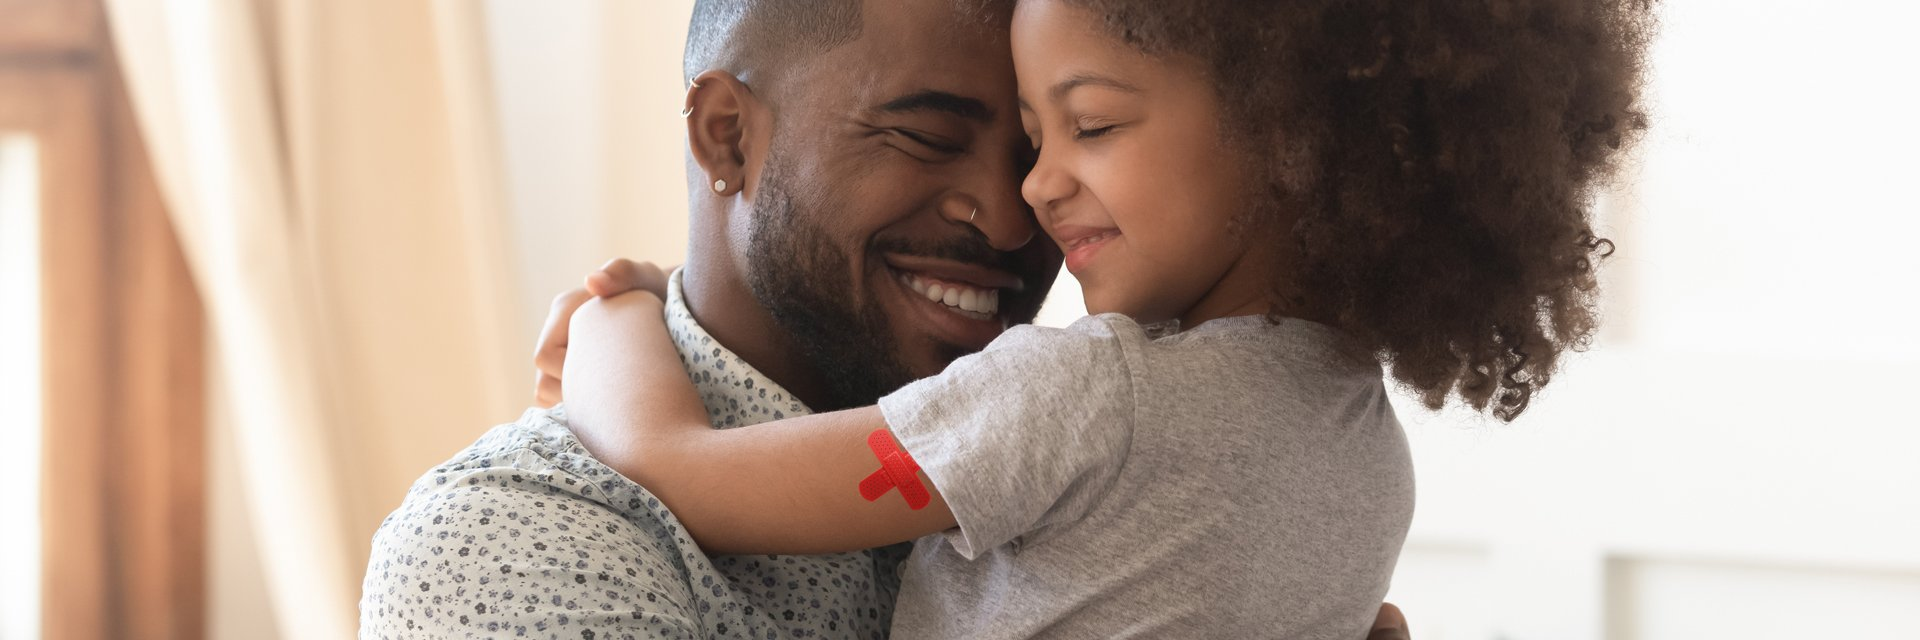 Man holding daughter with band-aid on arm.